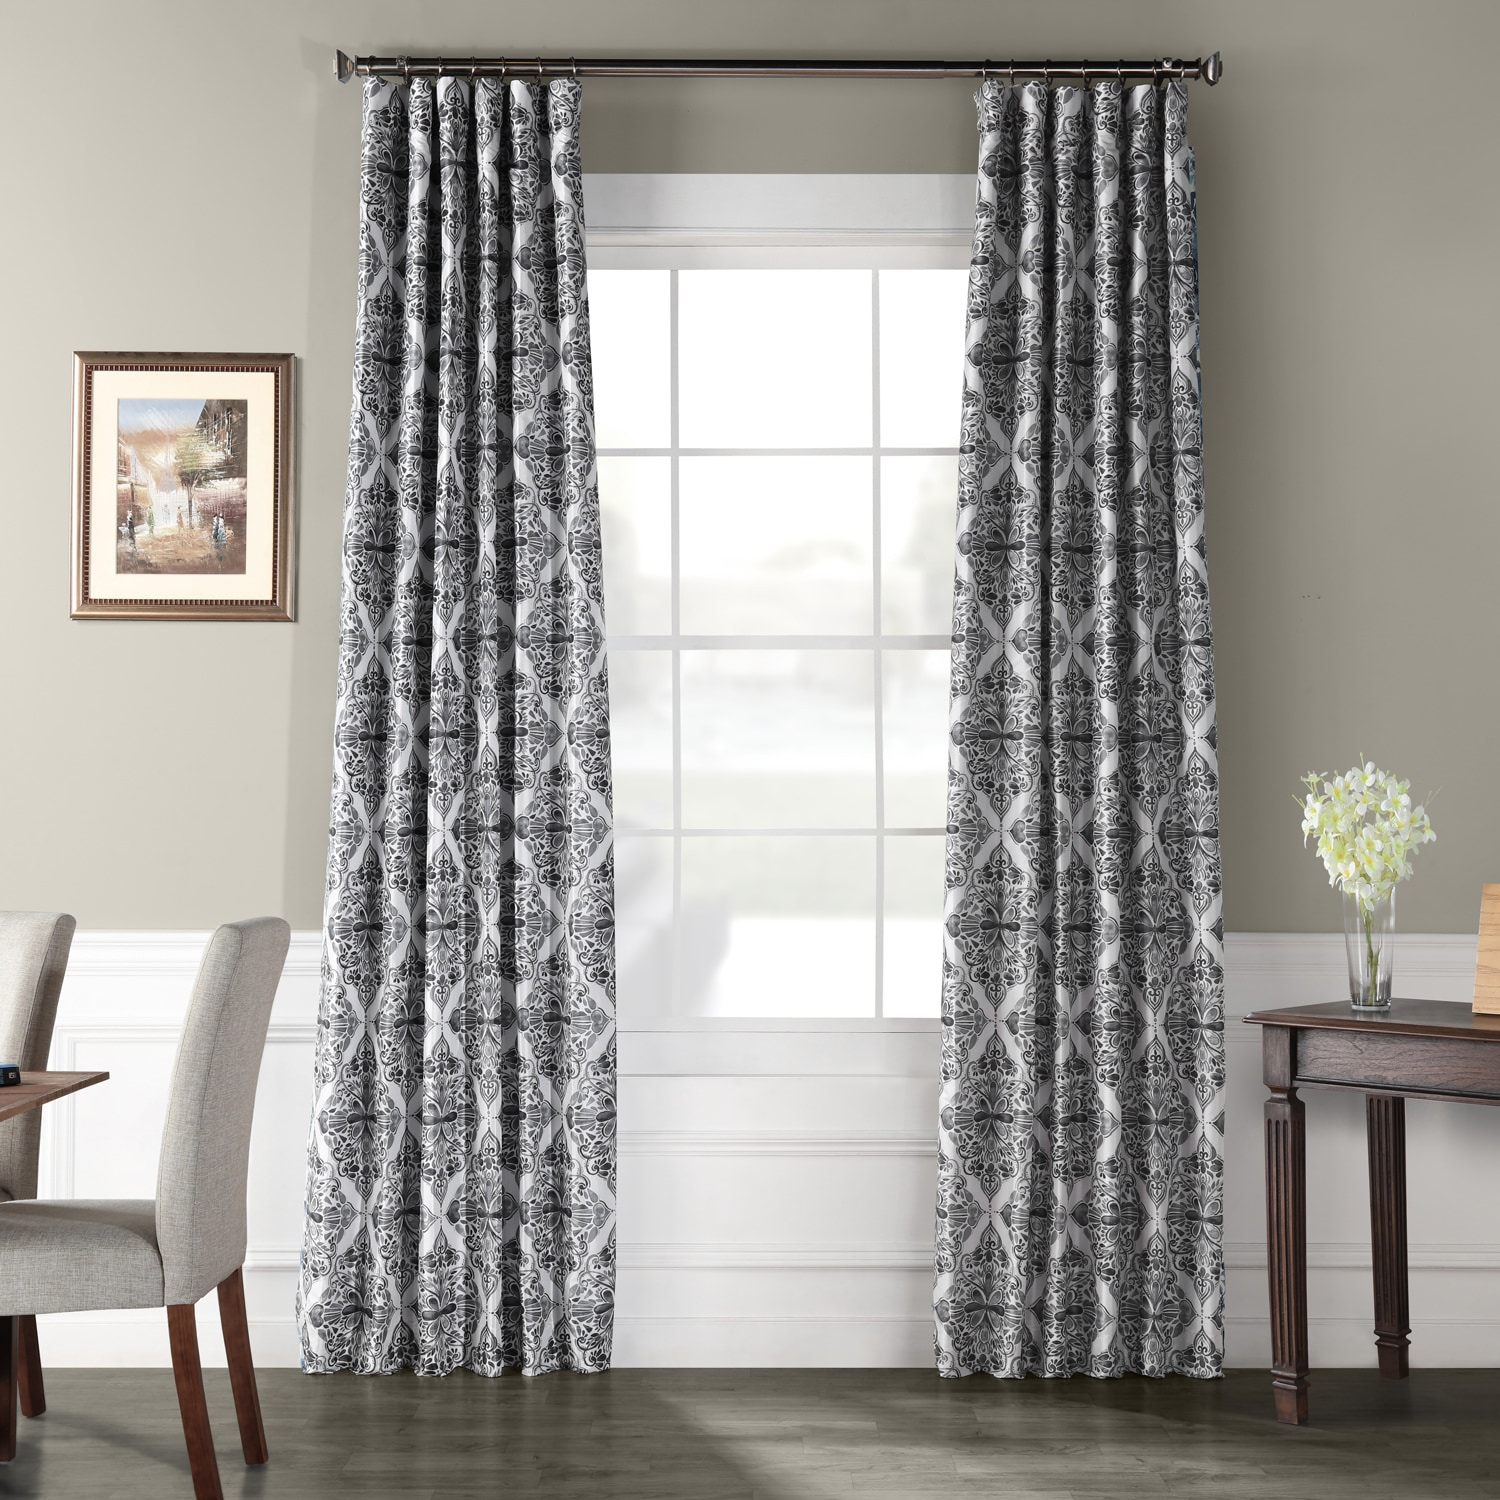 Tiera Grey Printed Faux Silk Taffeta Blackout Curtain Intended For Faux Silk Extra Wide Blackout Single Curtain Panels (View 14 of 20)